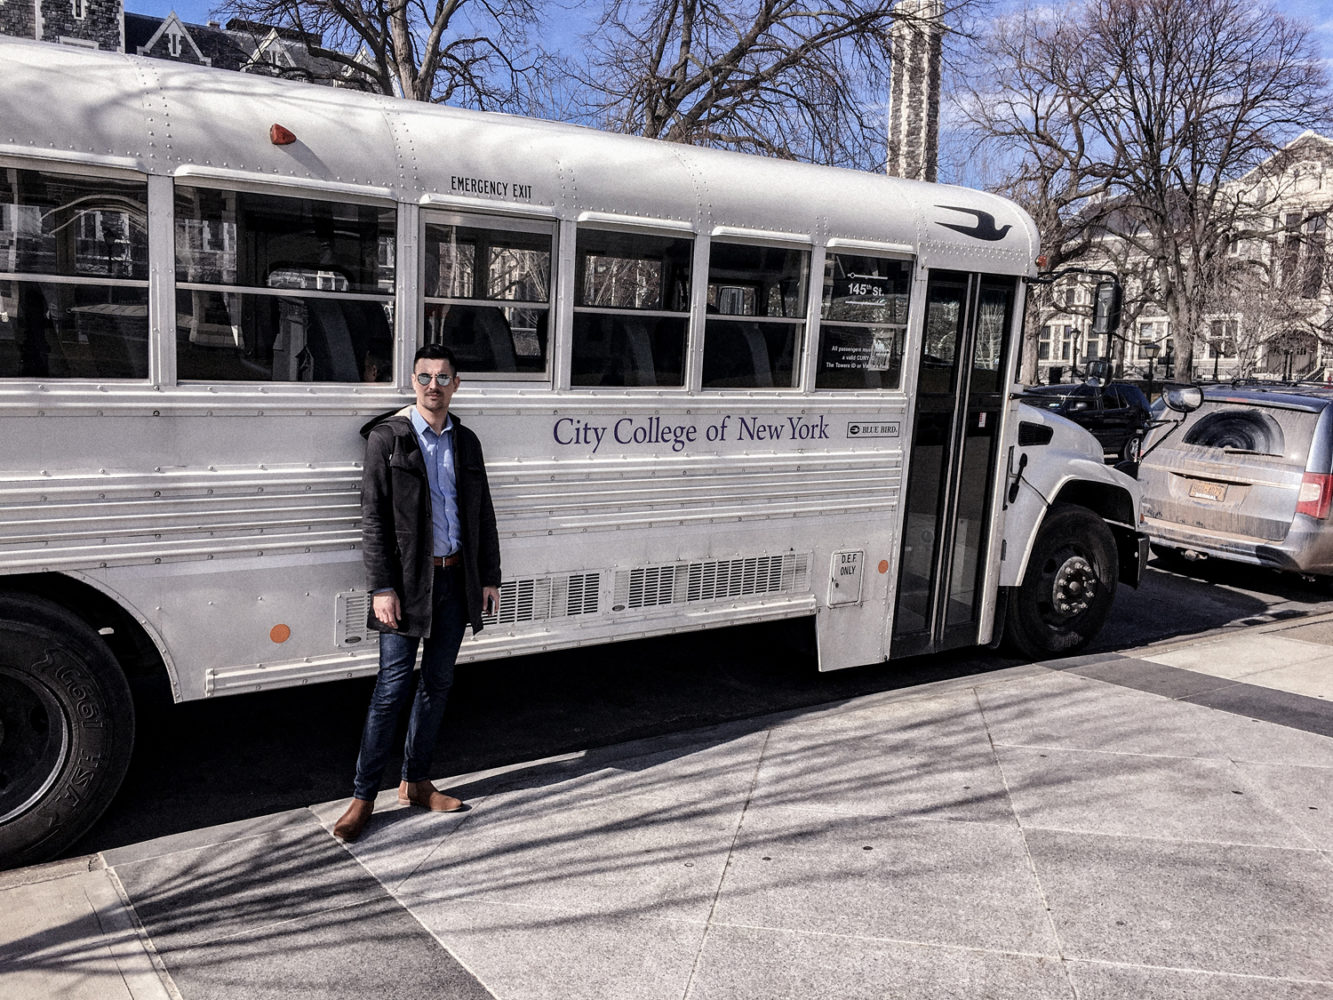 Nicolas prend la pose devant le bus scolaire du City College of New York